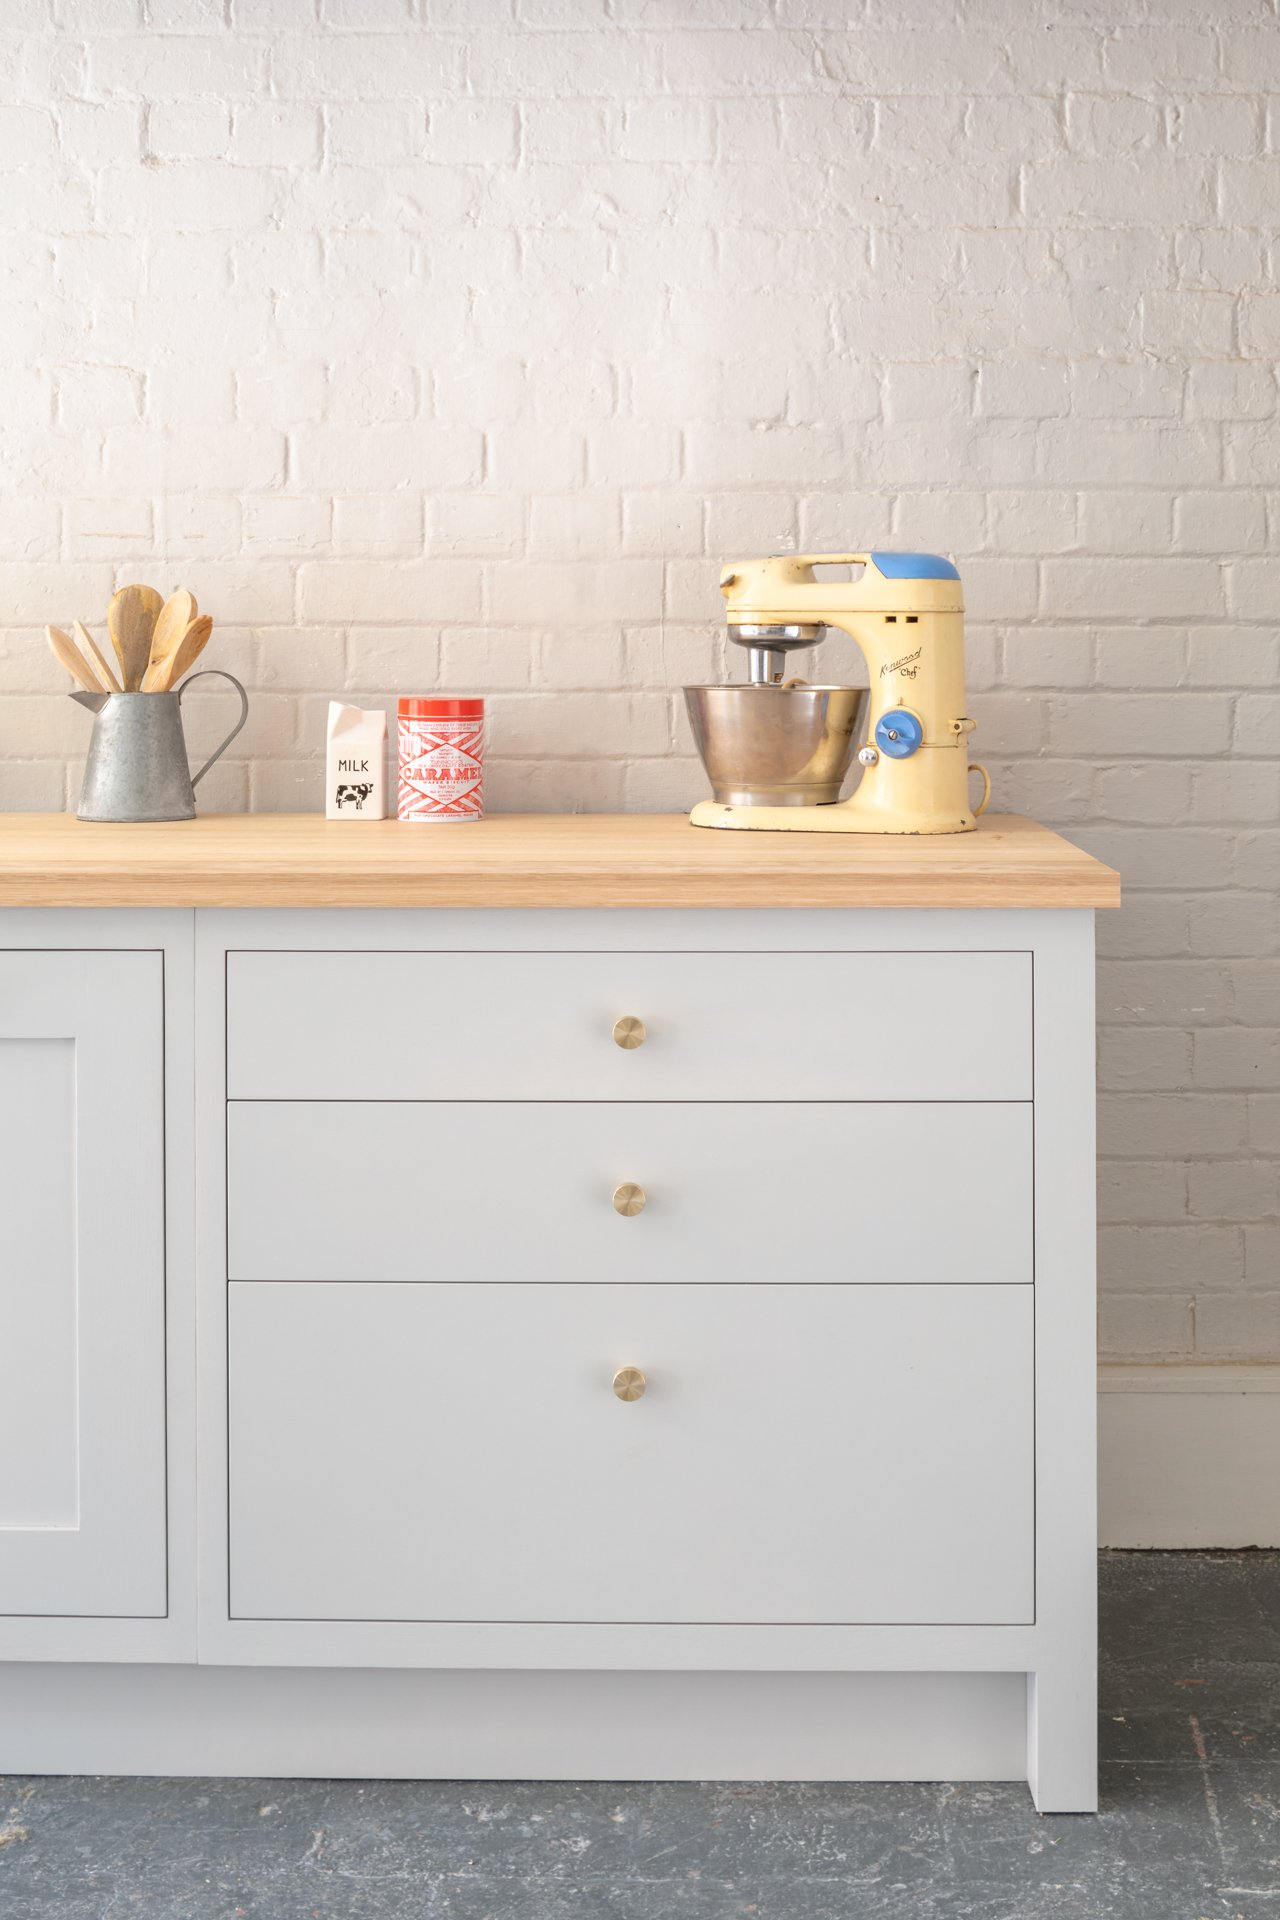 Honest Kitchens Grey Shaker Cabinets with drawers